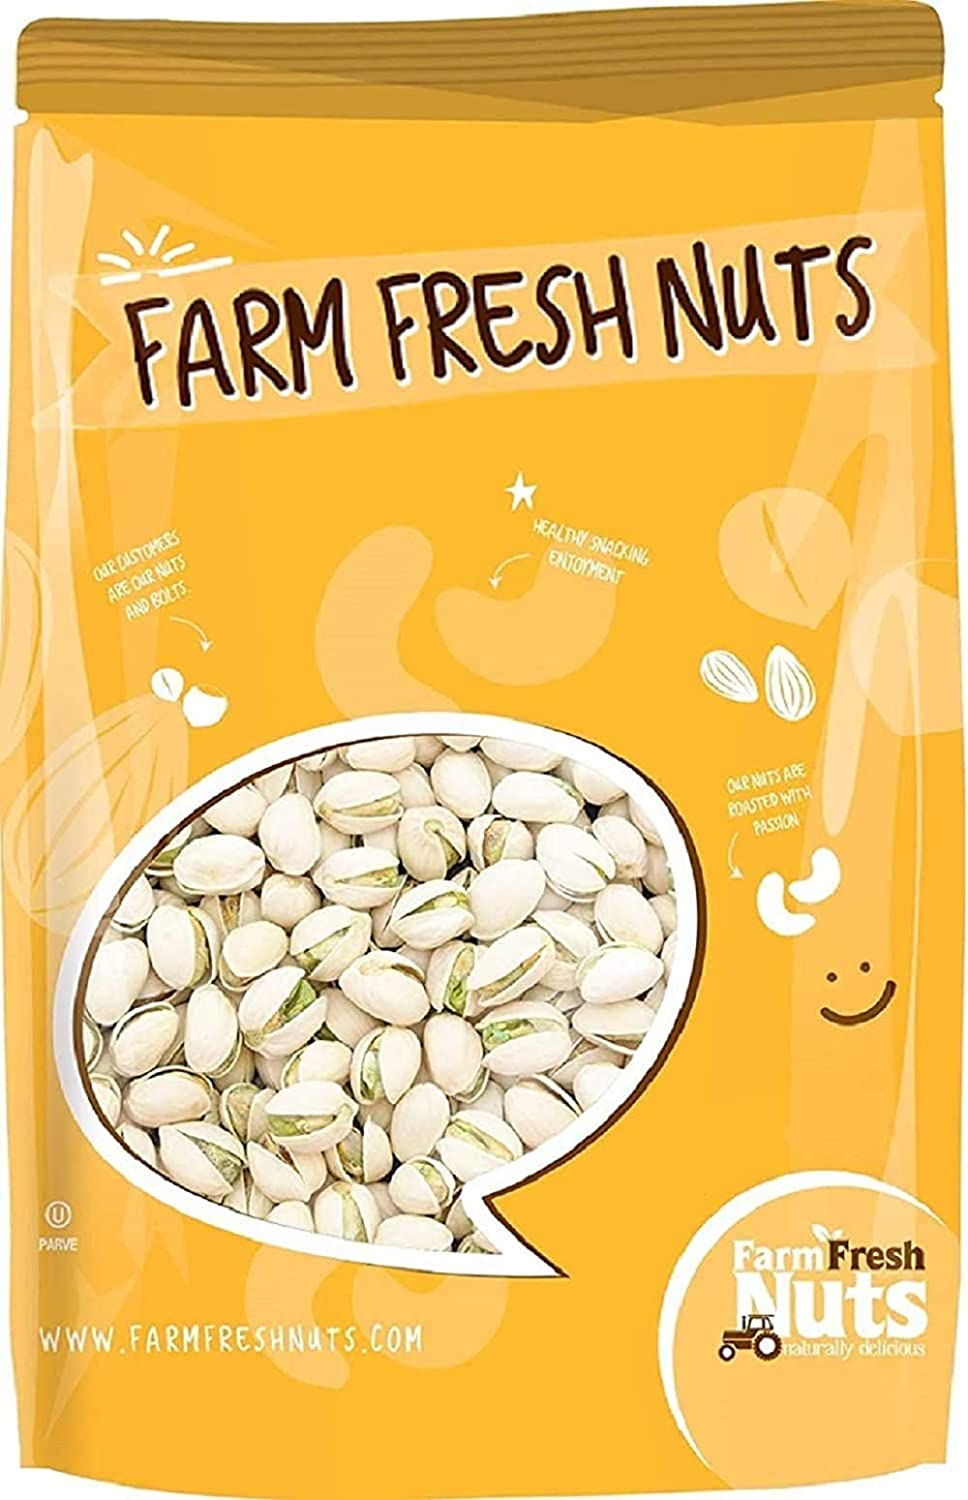 Dry Roasted In Shell Pistachios with - 2 Salt Sea Lbs. Pacific Nippon regular agency 70% OFF Outlet